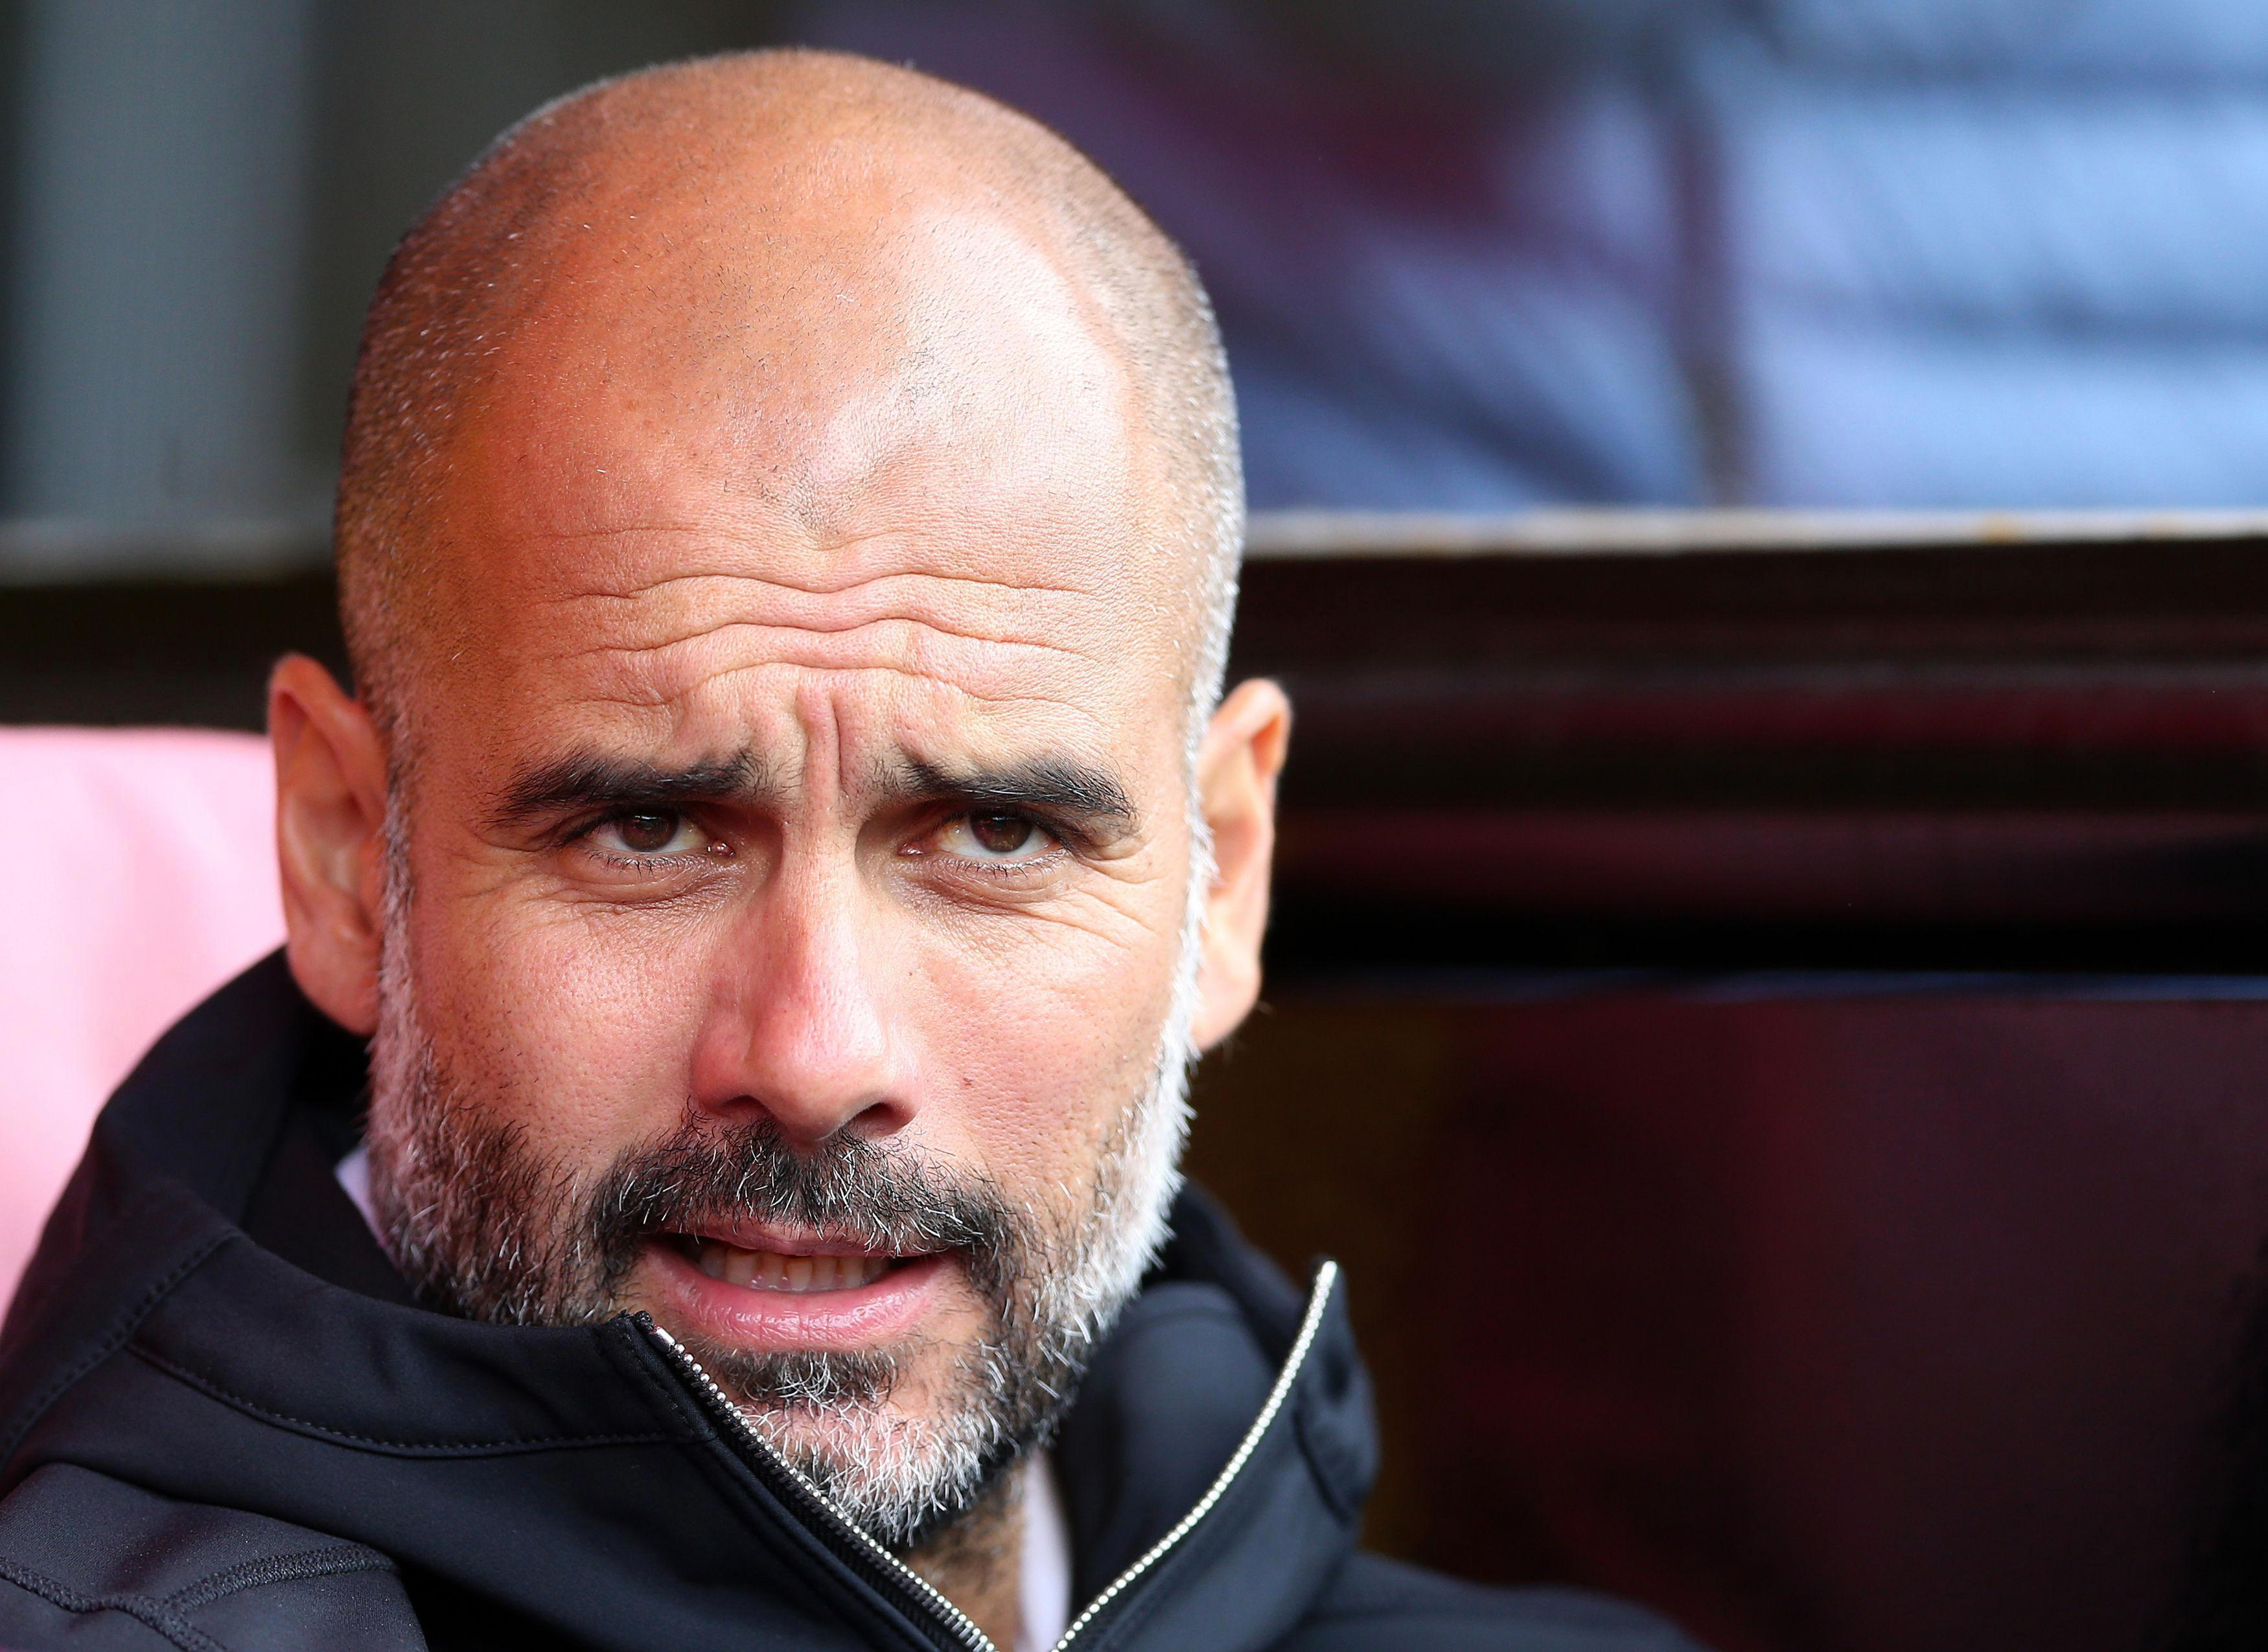 Pep Guardiola's side have picked up 13 points from their first five league outings